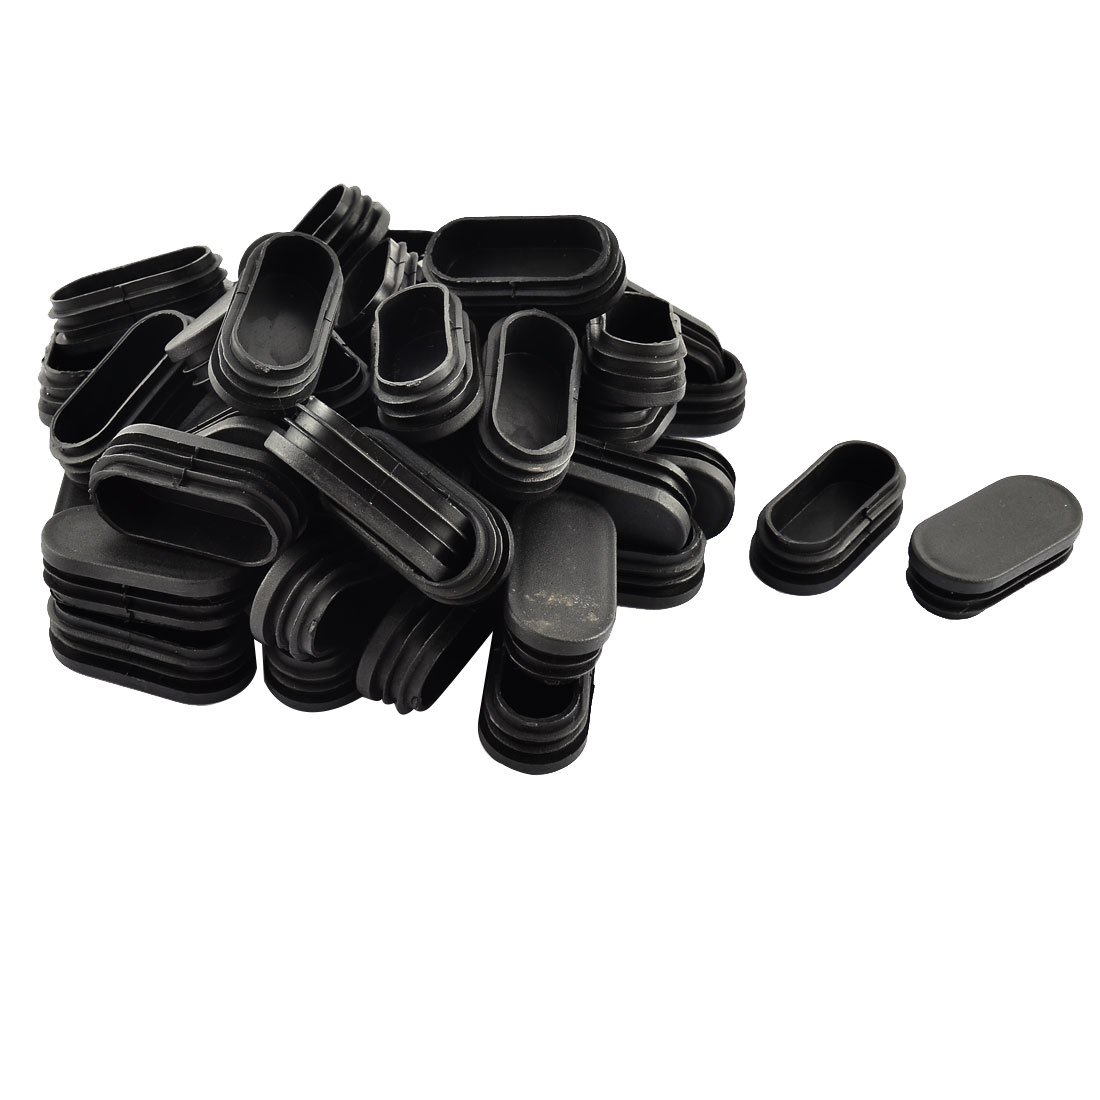 Home Floor No Scratch Protection Plastic Chair Leg Pipe Tube Insert Black 50pcs